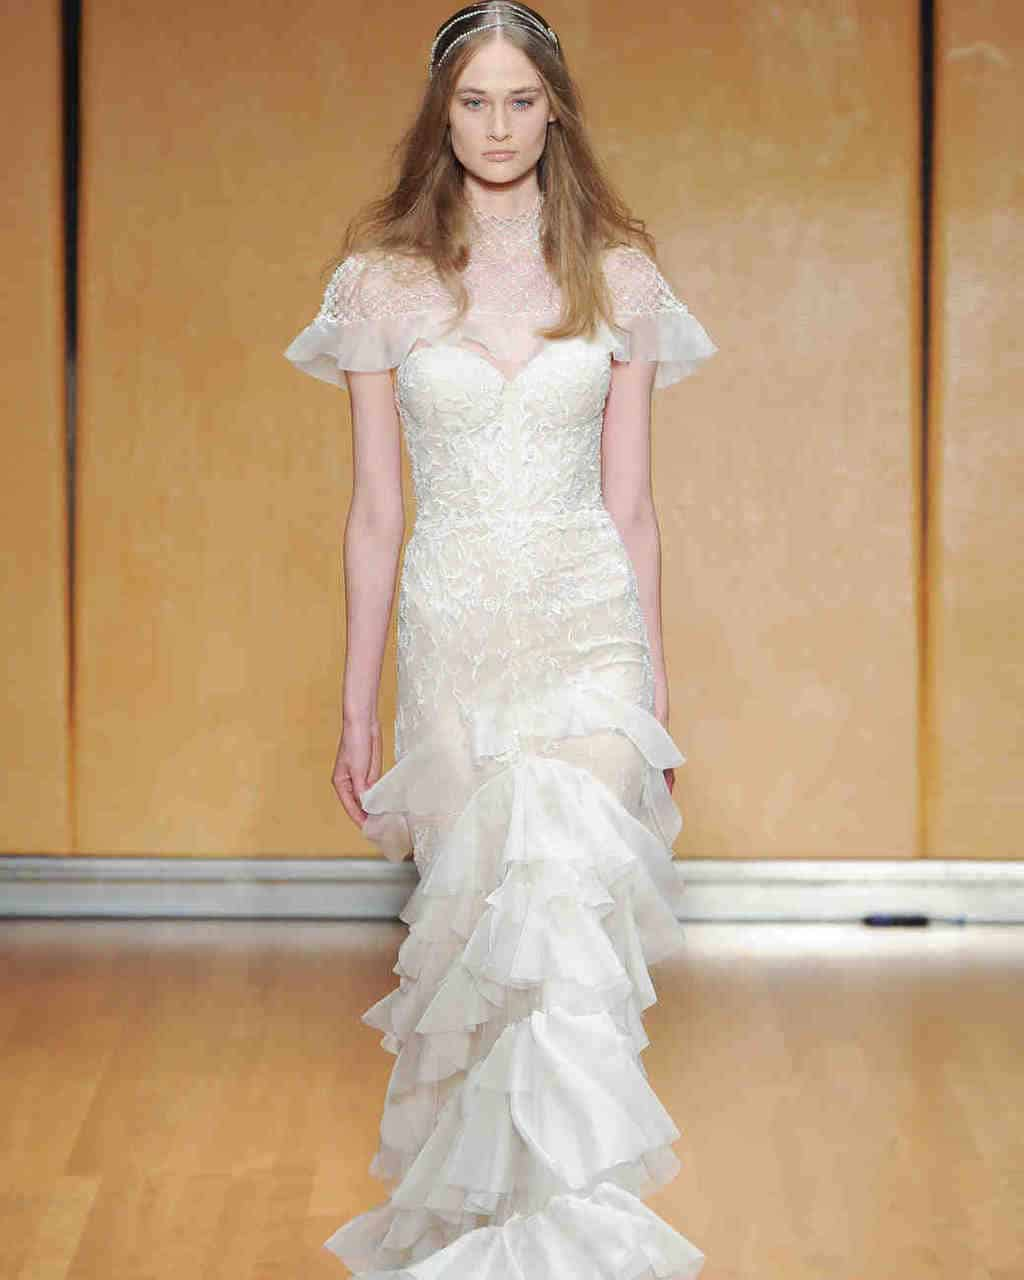 inbal-dror-wedding-dress-fall2017-6203351-005_vert_1